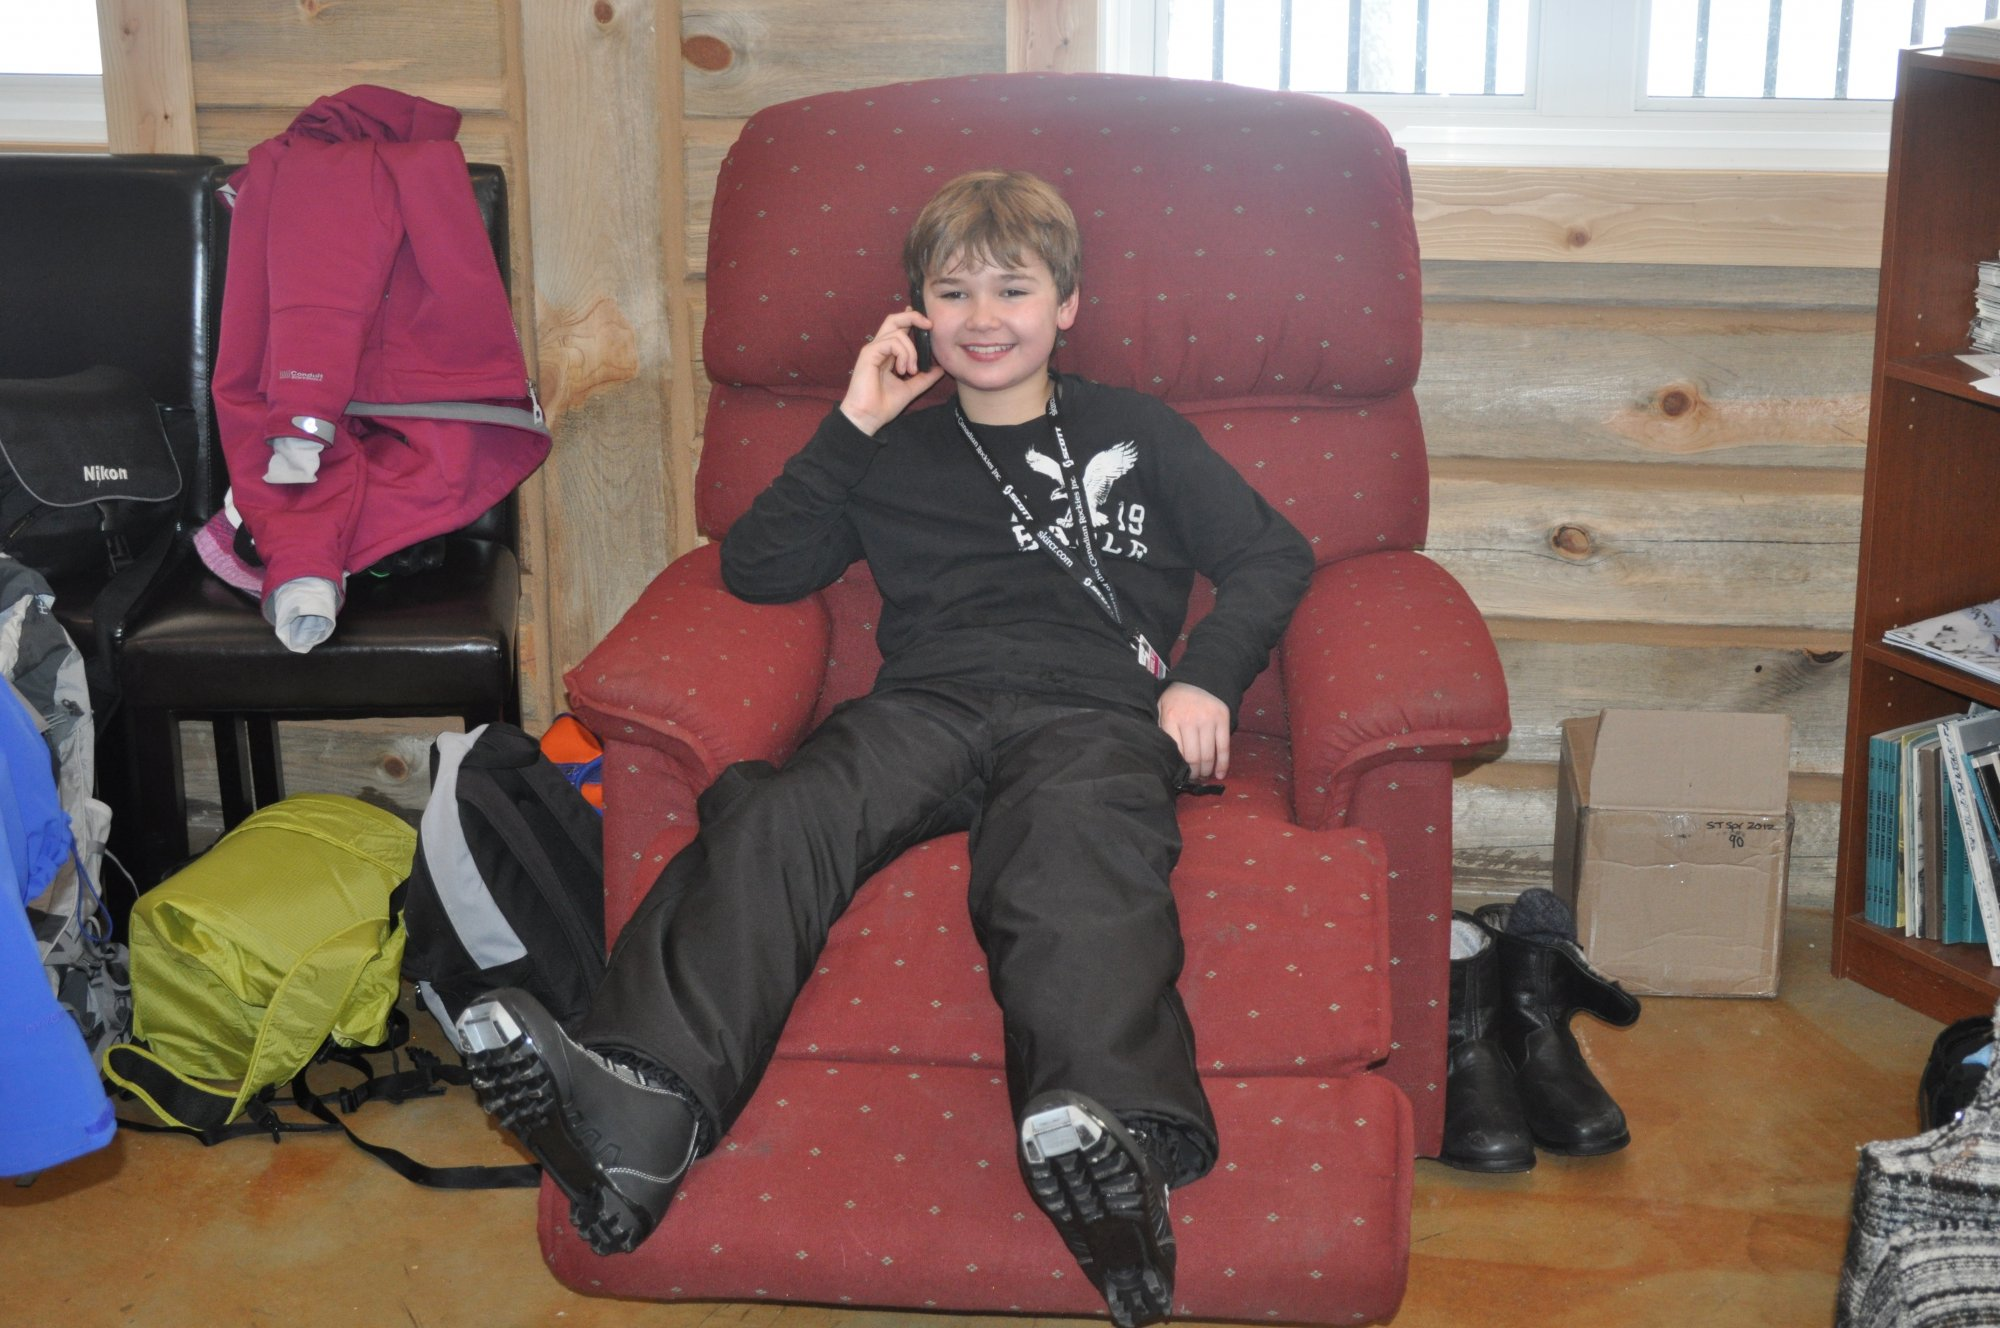 Lounging in the Dawn Mountain Lodge after an afternoon nordic skiing